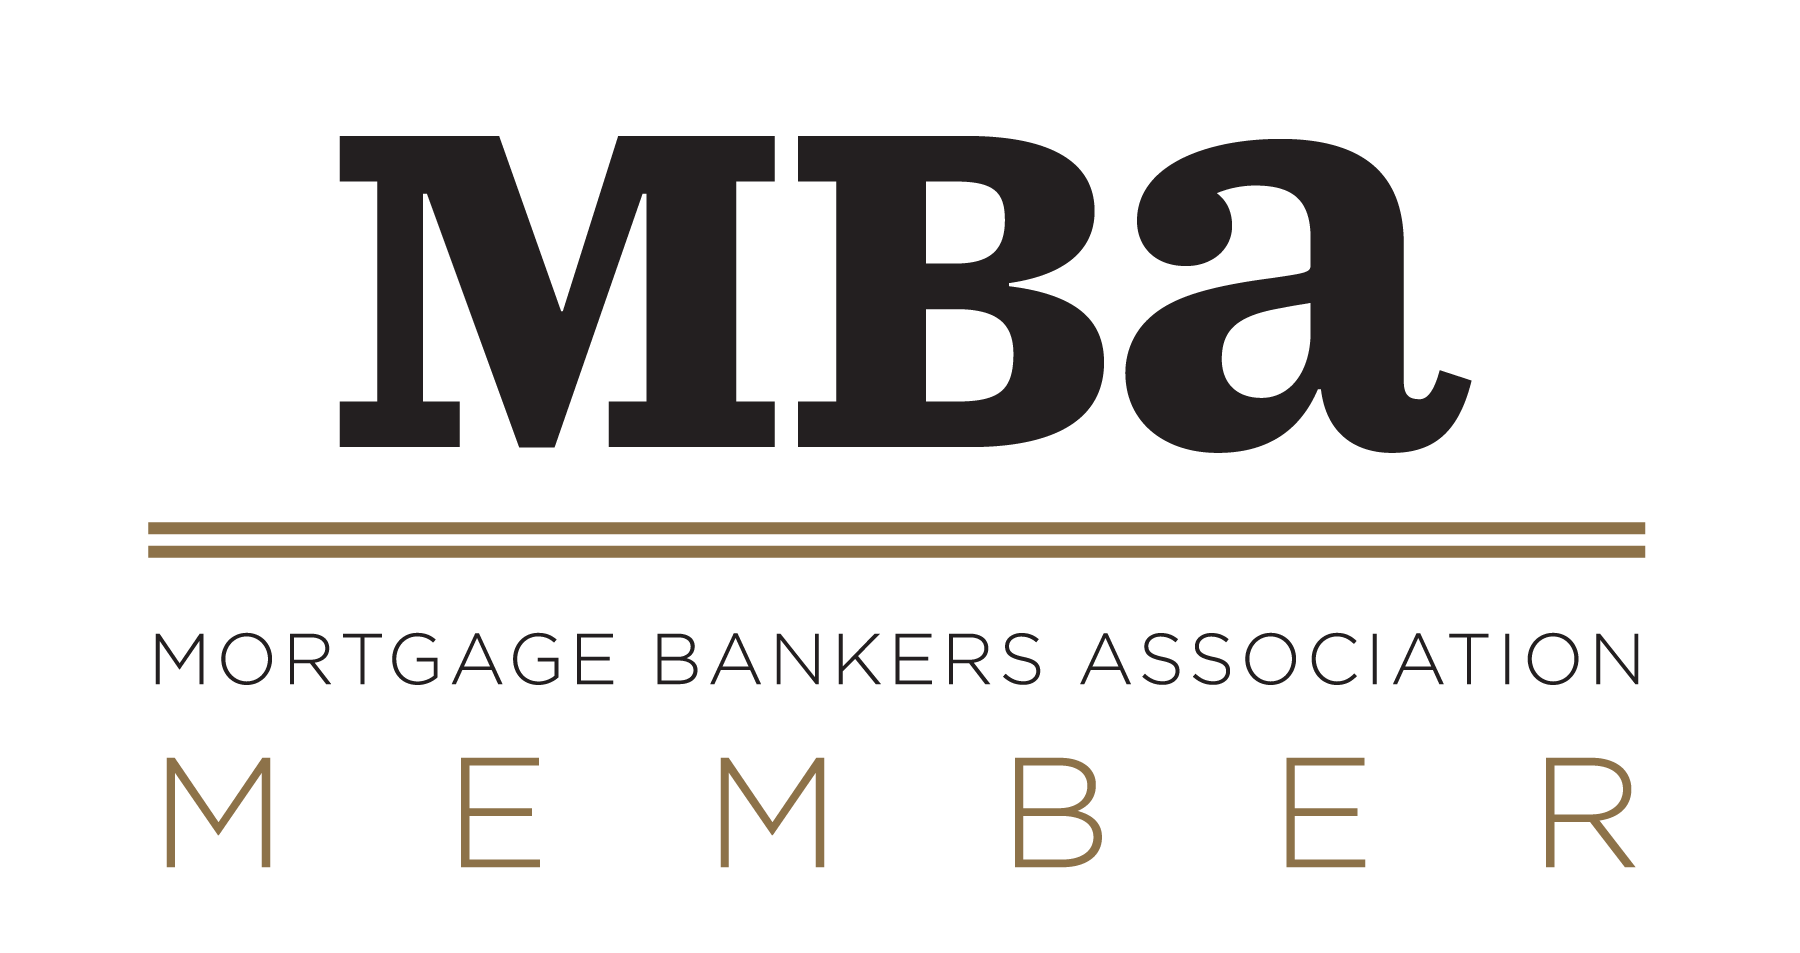 Picture signifying membership of Mortgage Bankers Association